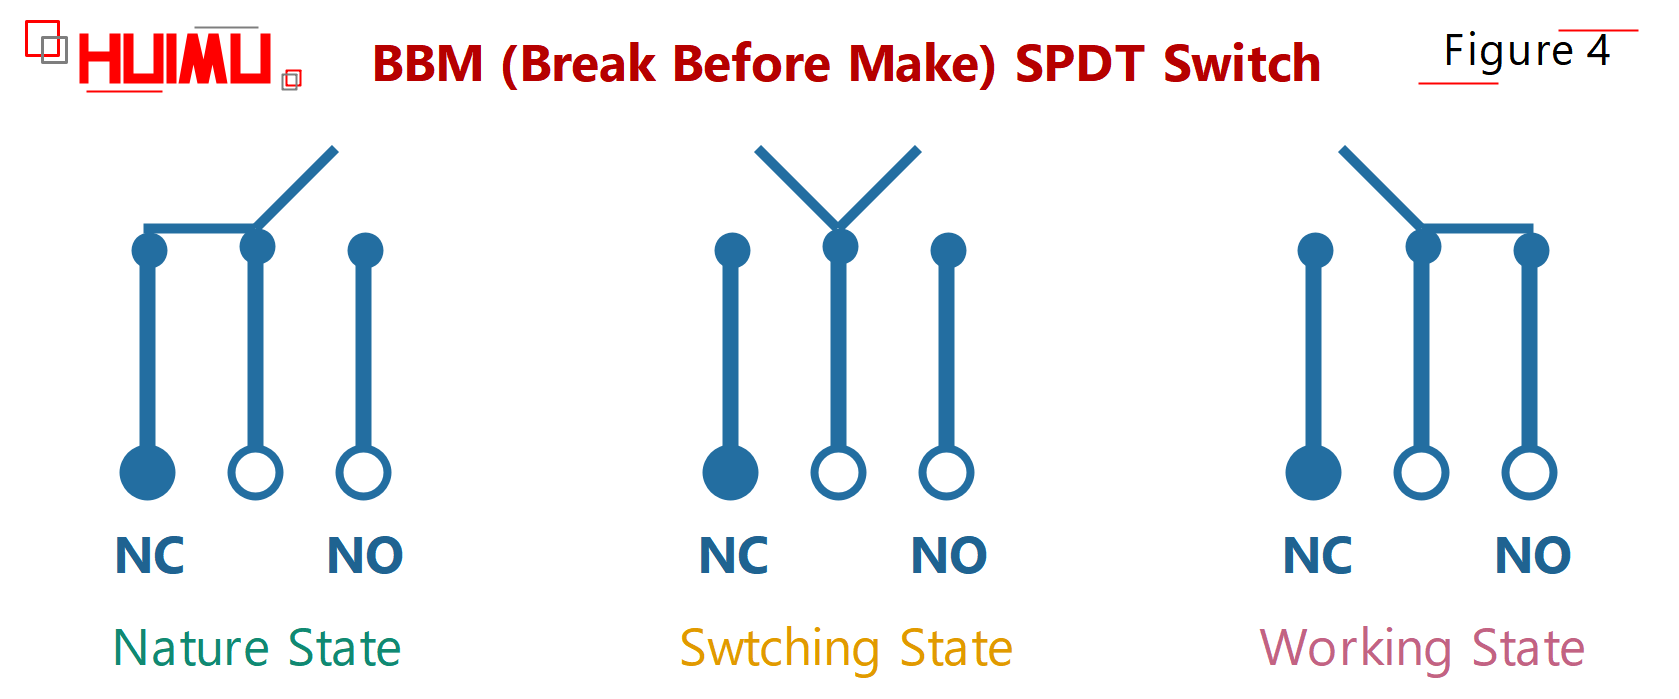 What is BBM (Break Before Make) ? How Break-Before-Make spdt switch works? spdt on off on switch, spdt on off on,spdt switch working, spdt toggle. More detail via www.@huimultd.com